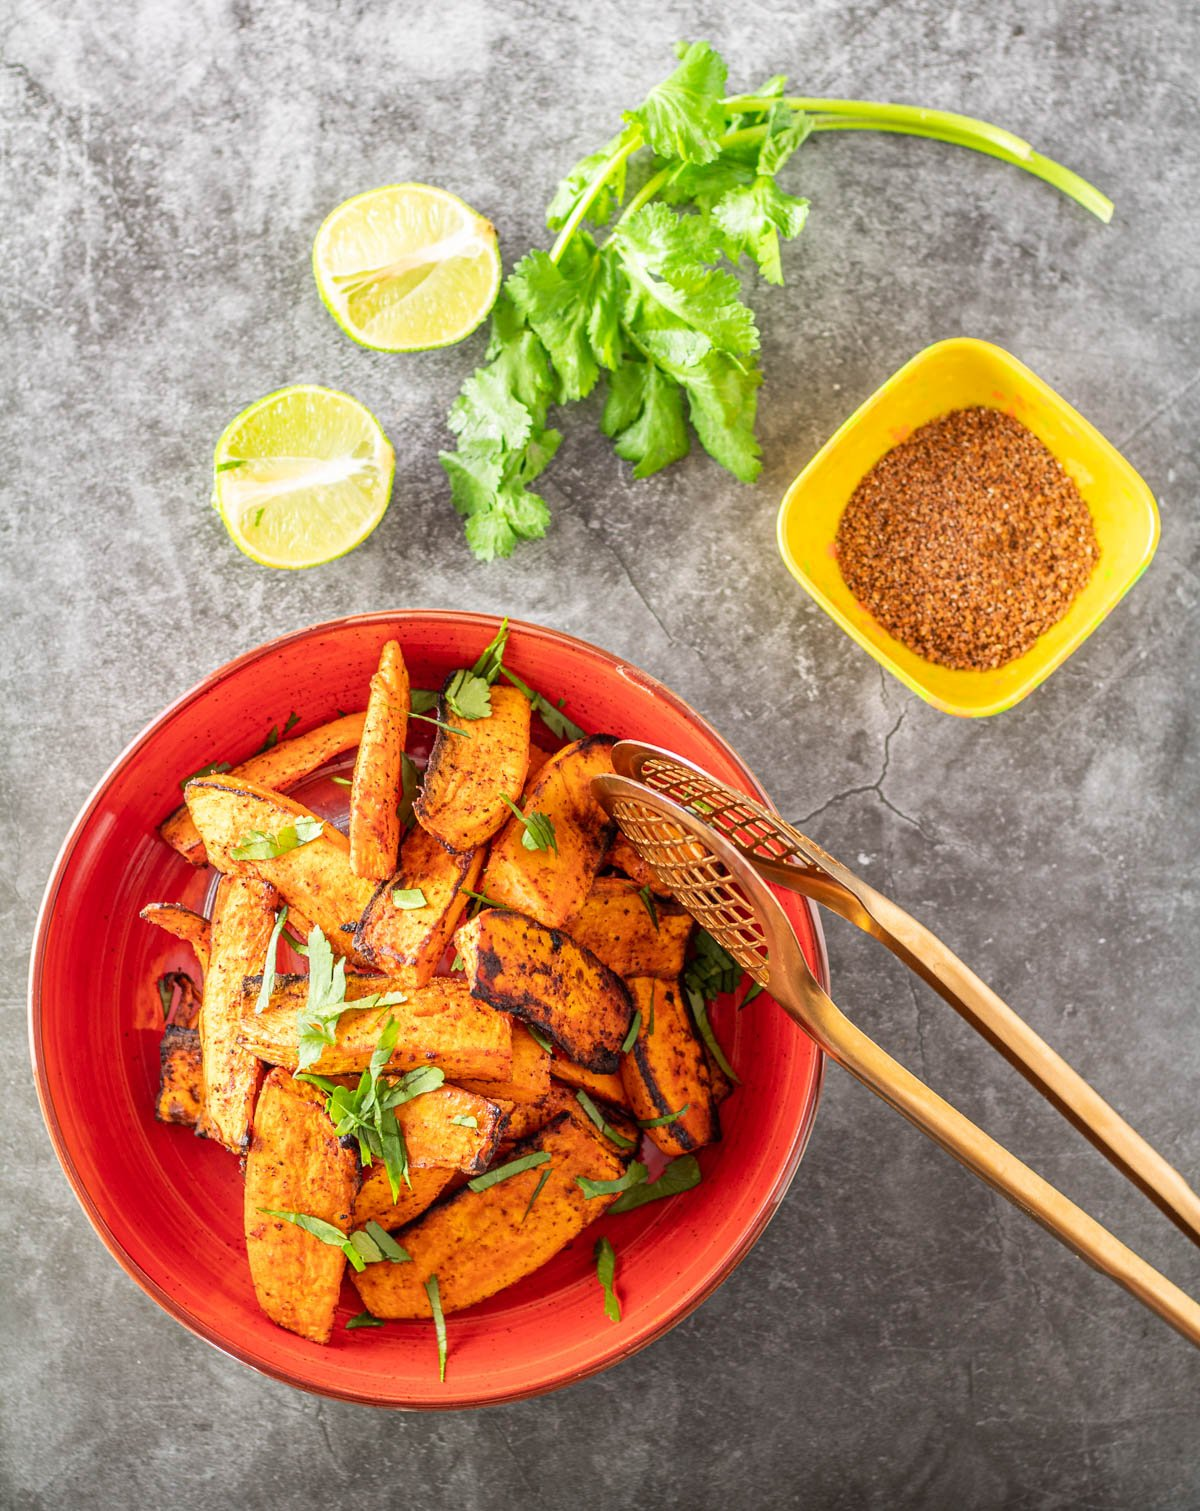 Air fryer sweet potato wedges in a red bowl with a bowl of tajin spice mix.